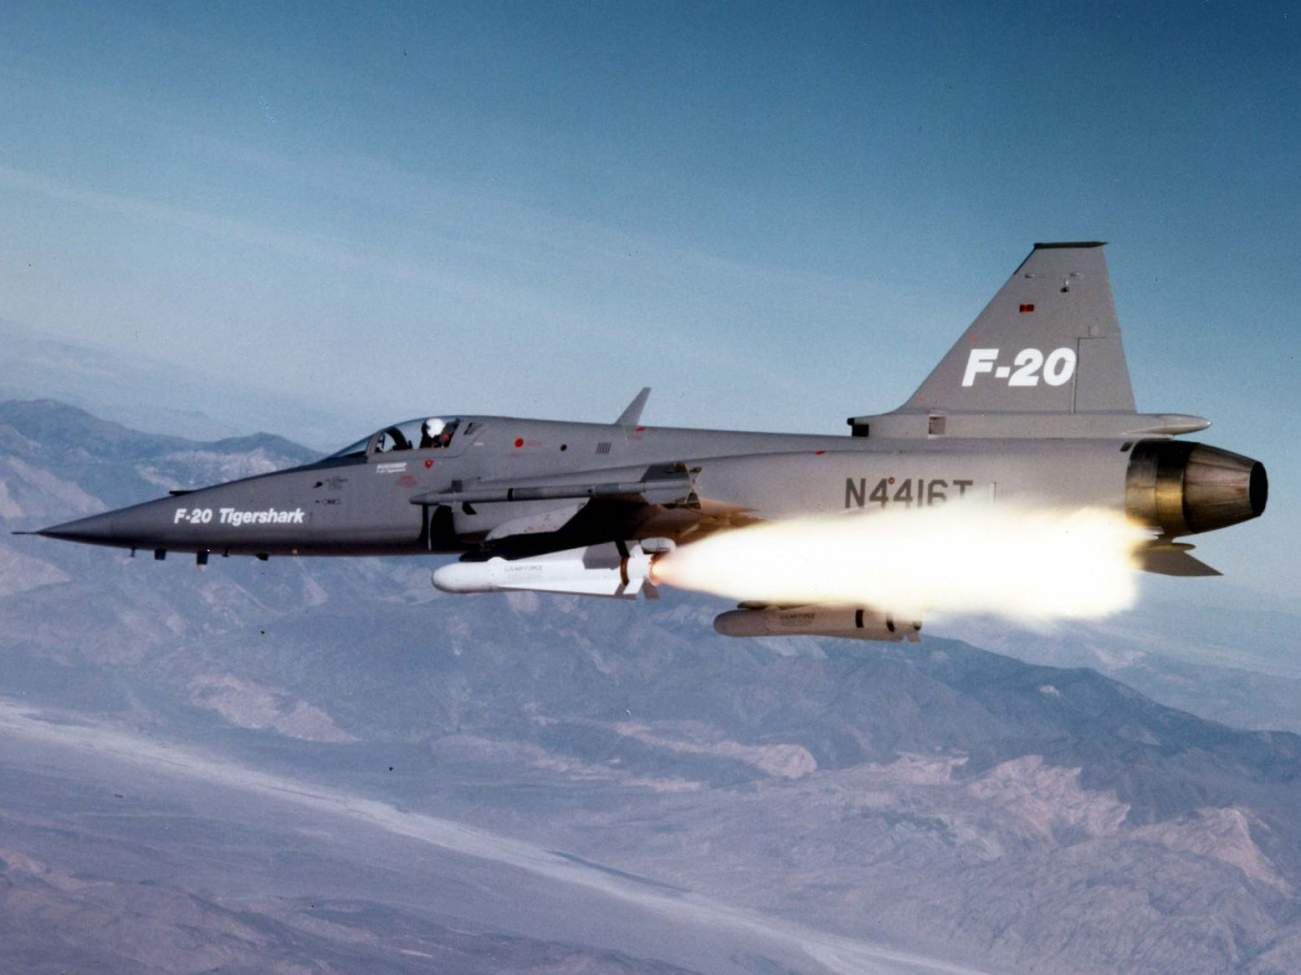 Meet the F-20 Tigershark: The Fighter the Air Force Turned